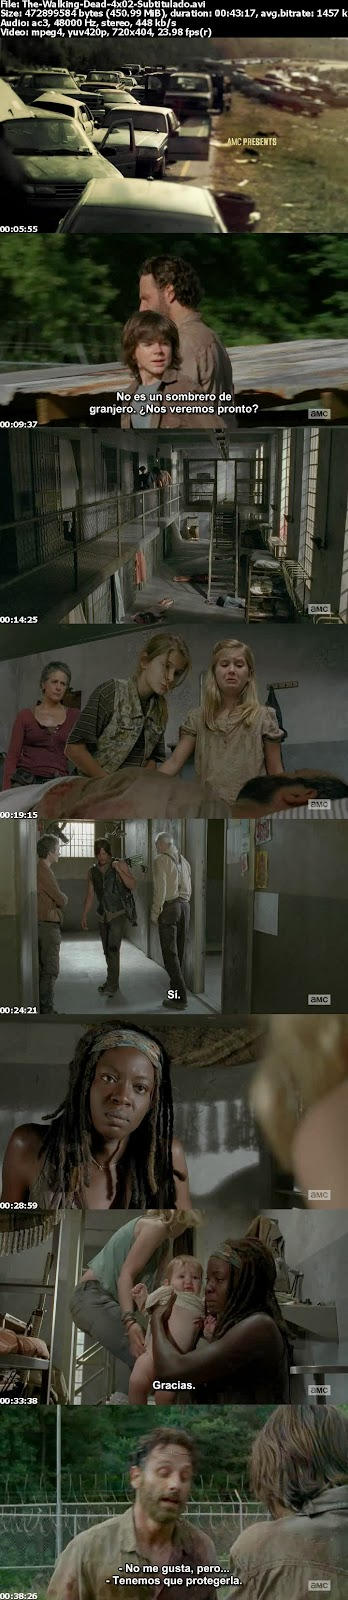 The Walking Dead 4×02 Infected [HDTV][Sub.Español Pegados] (peliculas hd )